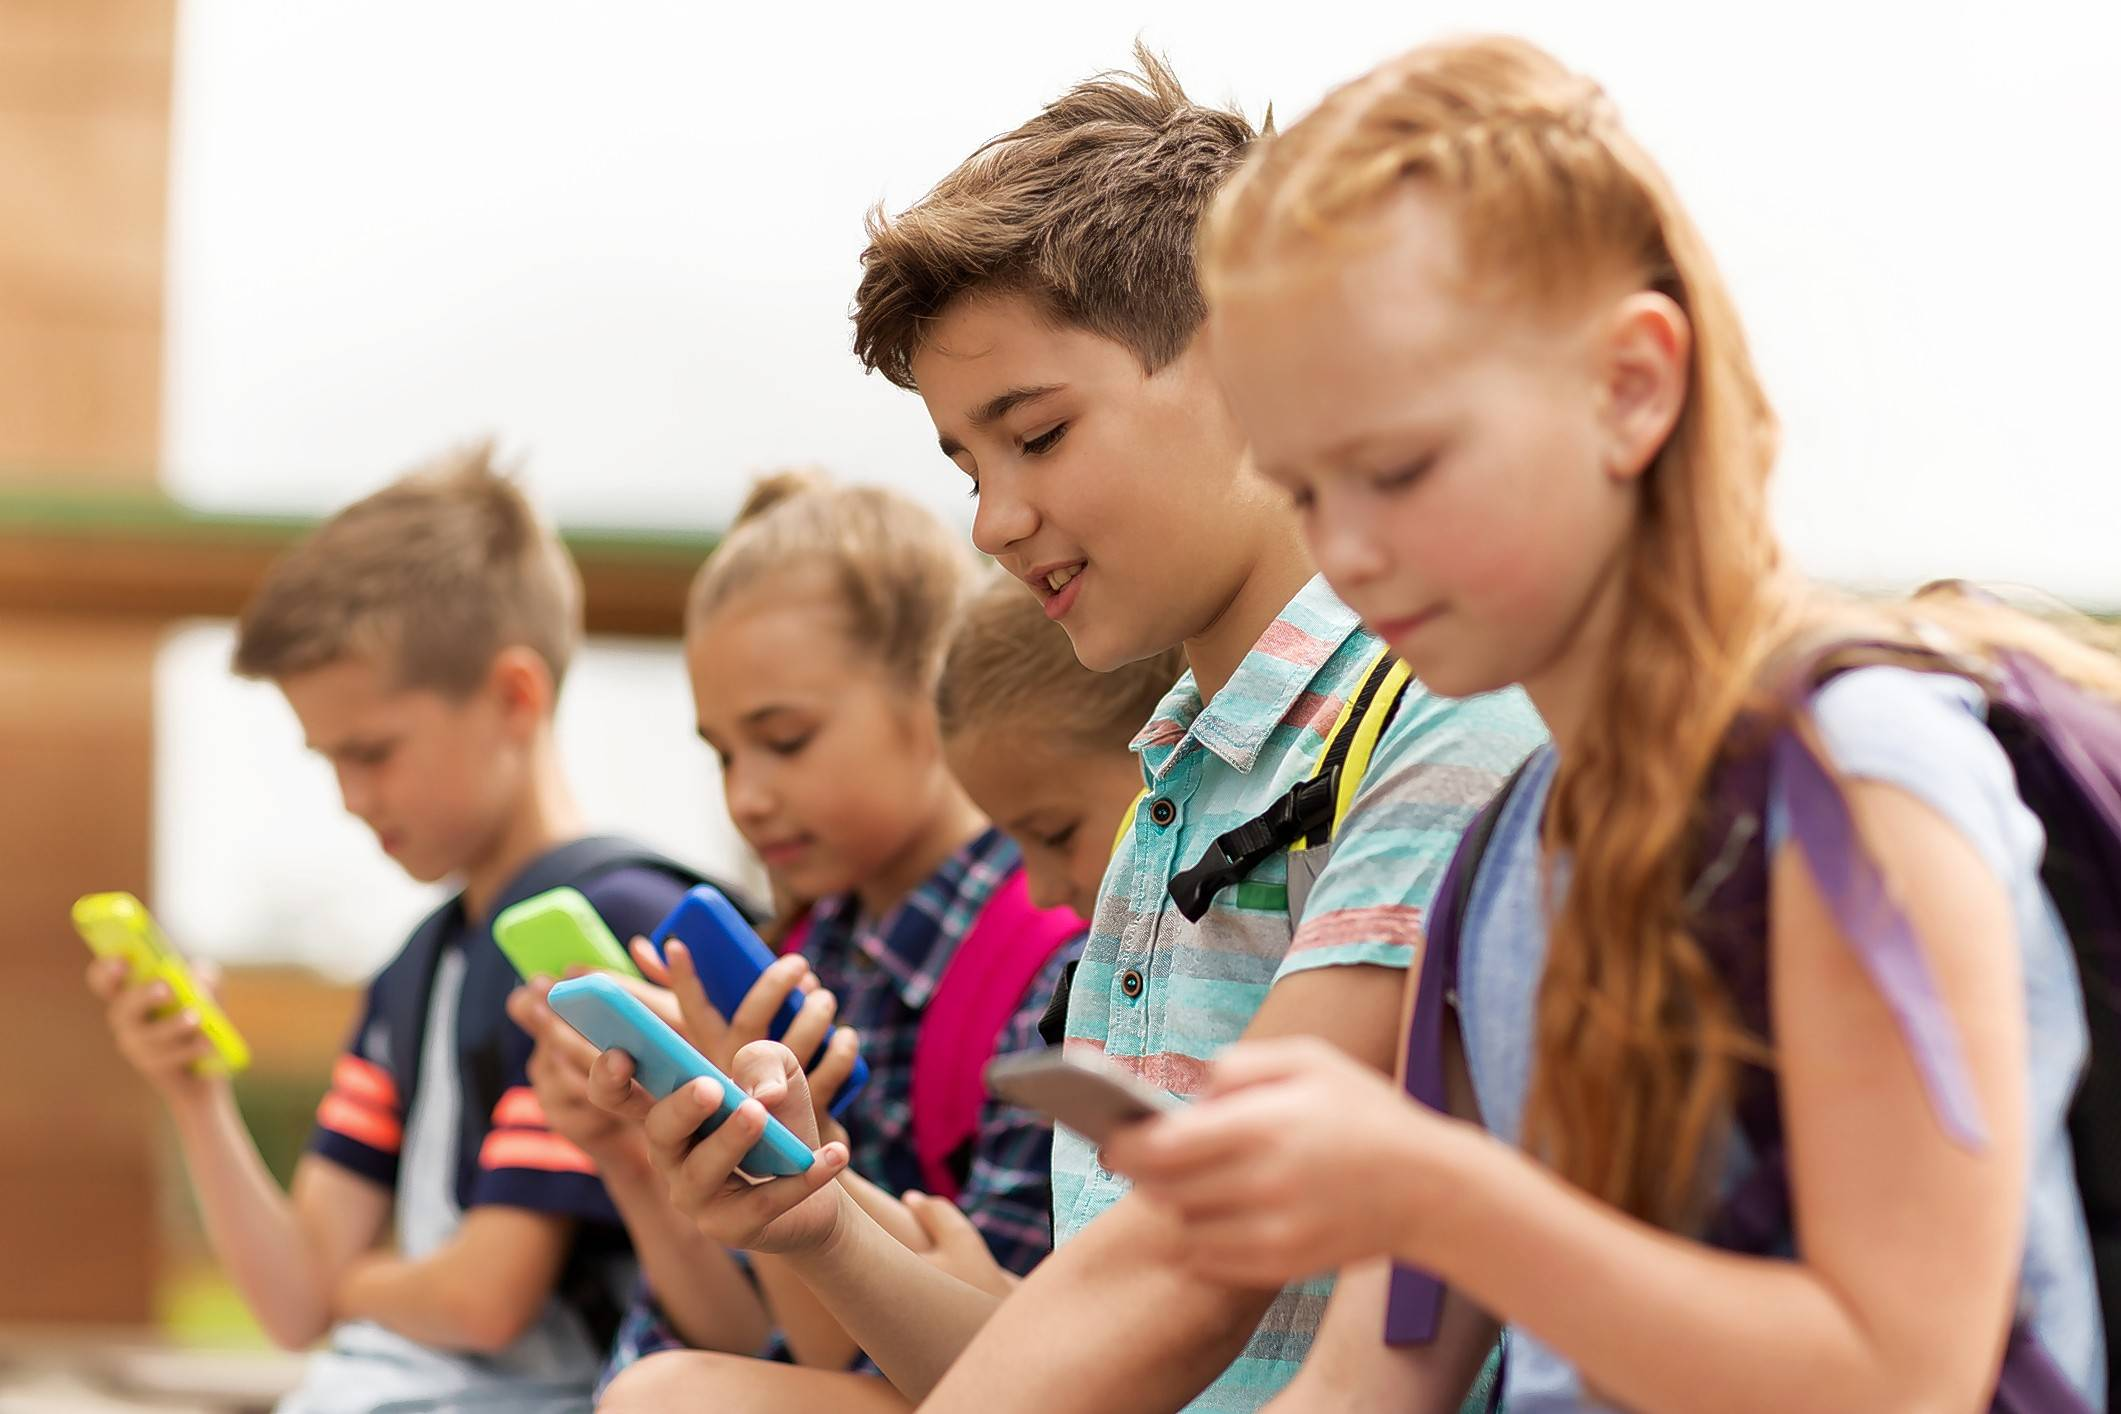 A new ballot measure in Colorado would make it illegal for cellphone providers to sell smartphones to children under the age of 13. The ban would require retailers to ask customers the age of the primary user of the smartphone and submit monthly adherence reports to the Colorado Department of Revenue.